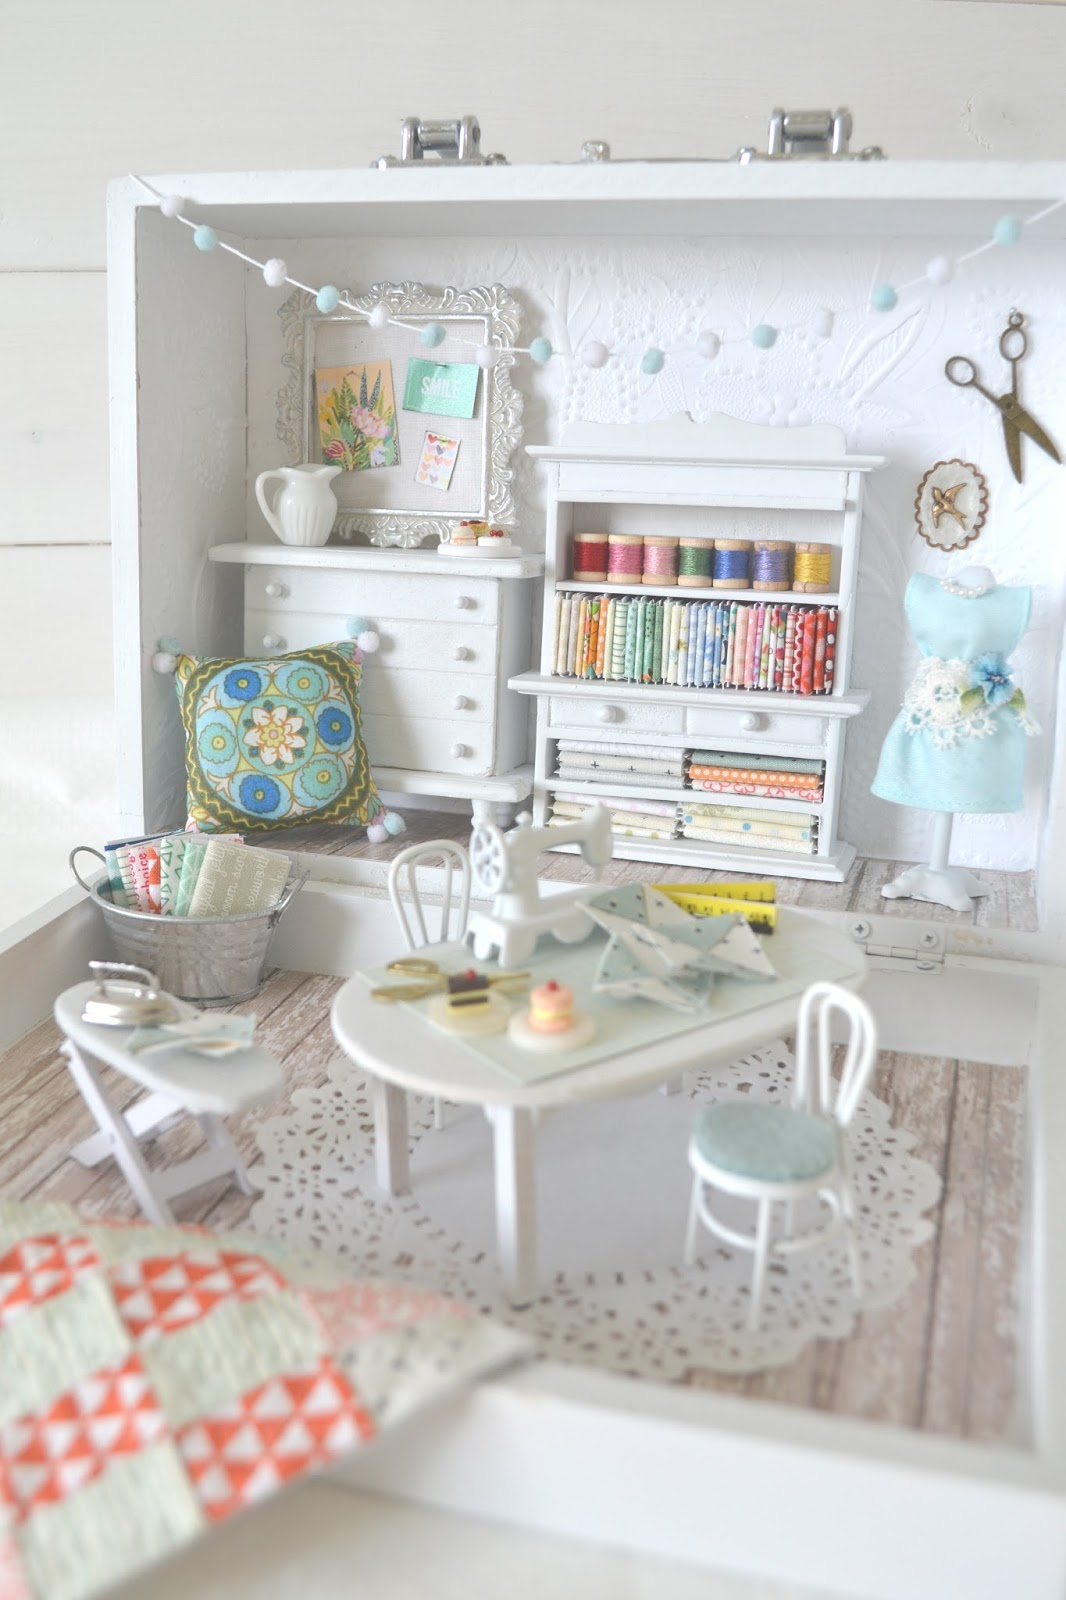 Tea Rose Home: Big Reveal of Small Sewing Room ~ Part 2